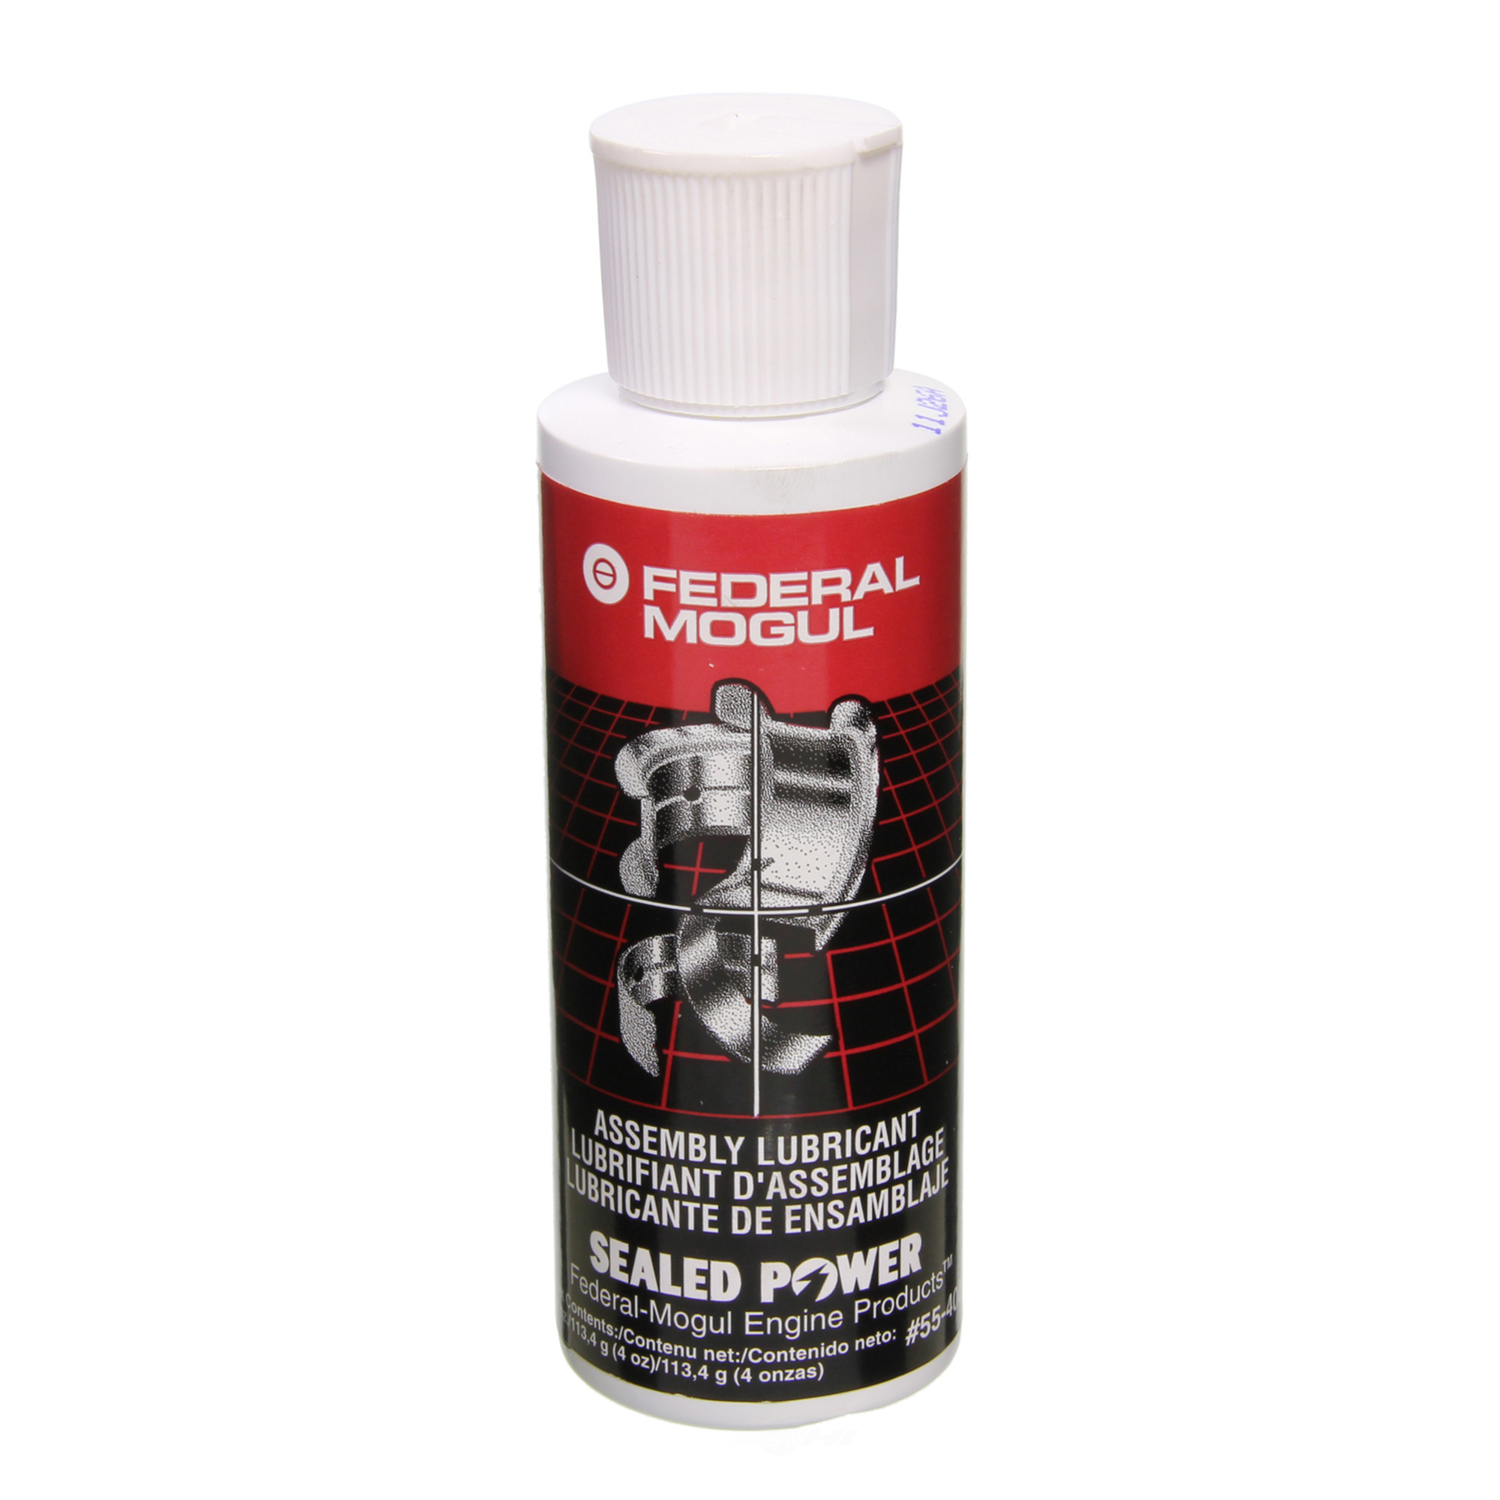 SEALED POWER - Assembly Lubricant - SEA 55-400